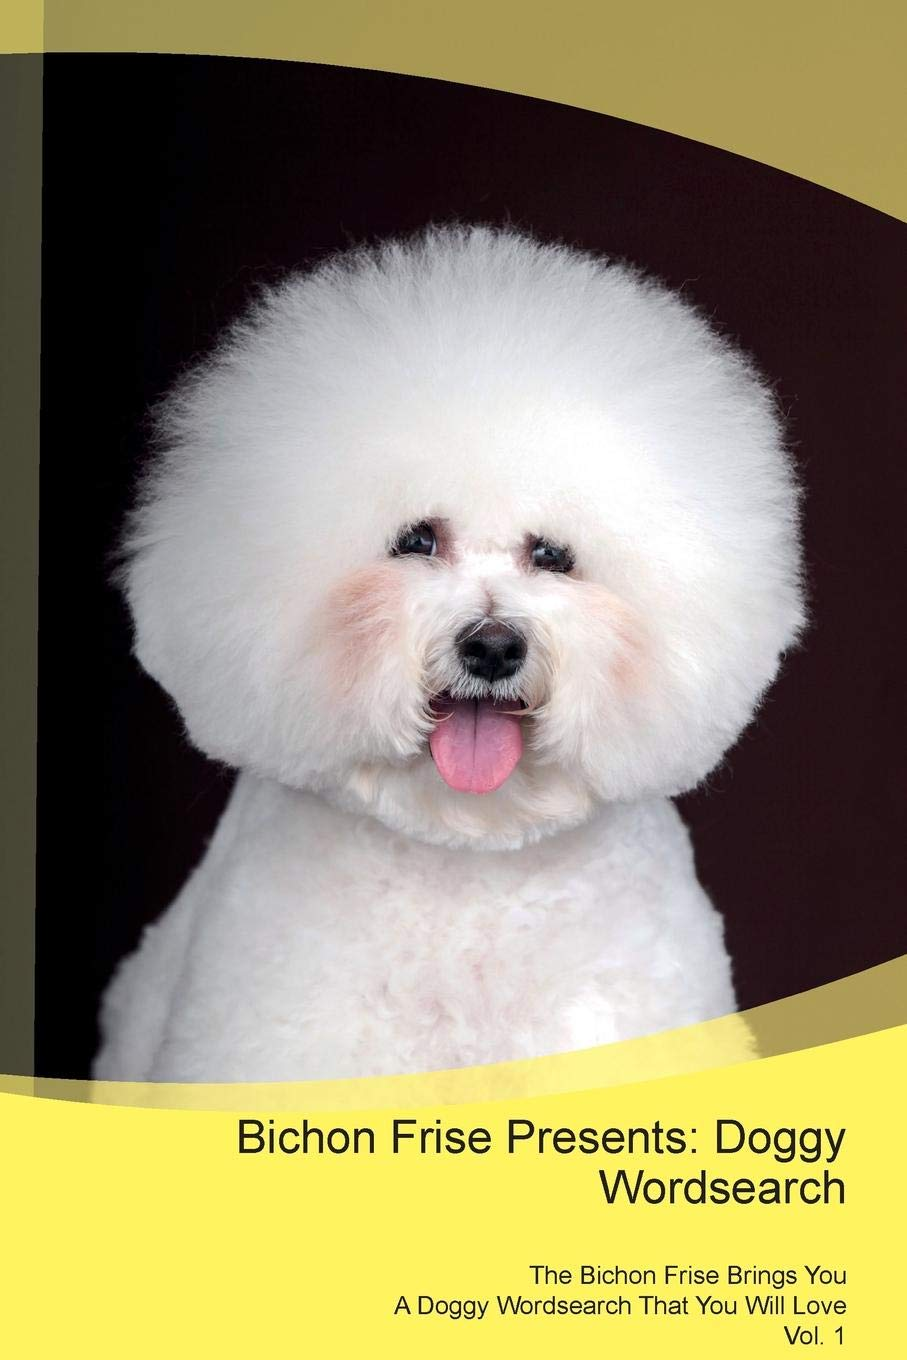 Bichon-Frise-Presents-Doggy-Wordsearch-The-Bichon-Frise-Brings-You-A-Doggy-Wordsearch-That-You-Will-Love-Vol-1